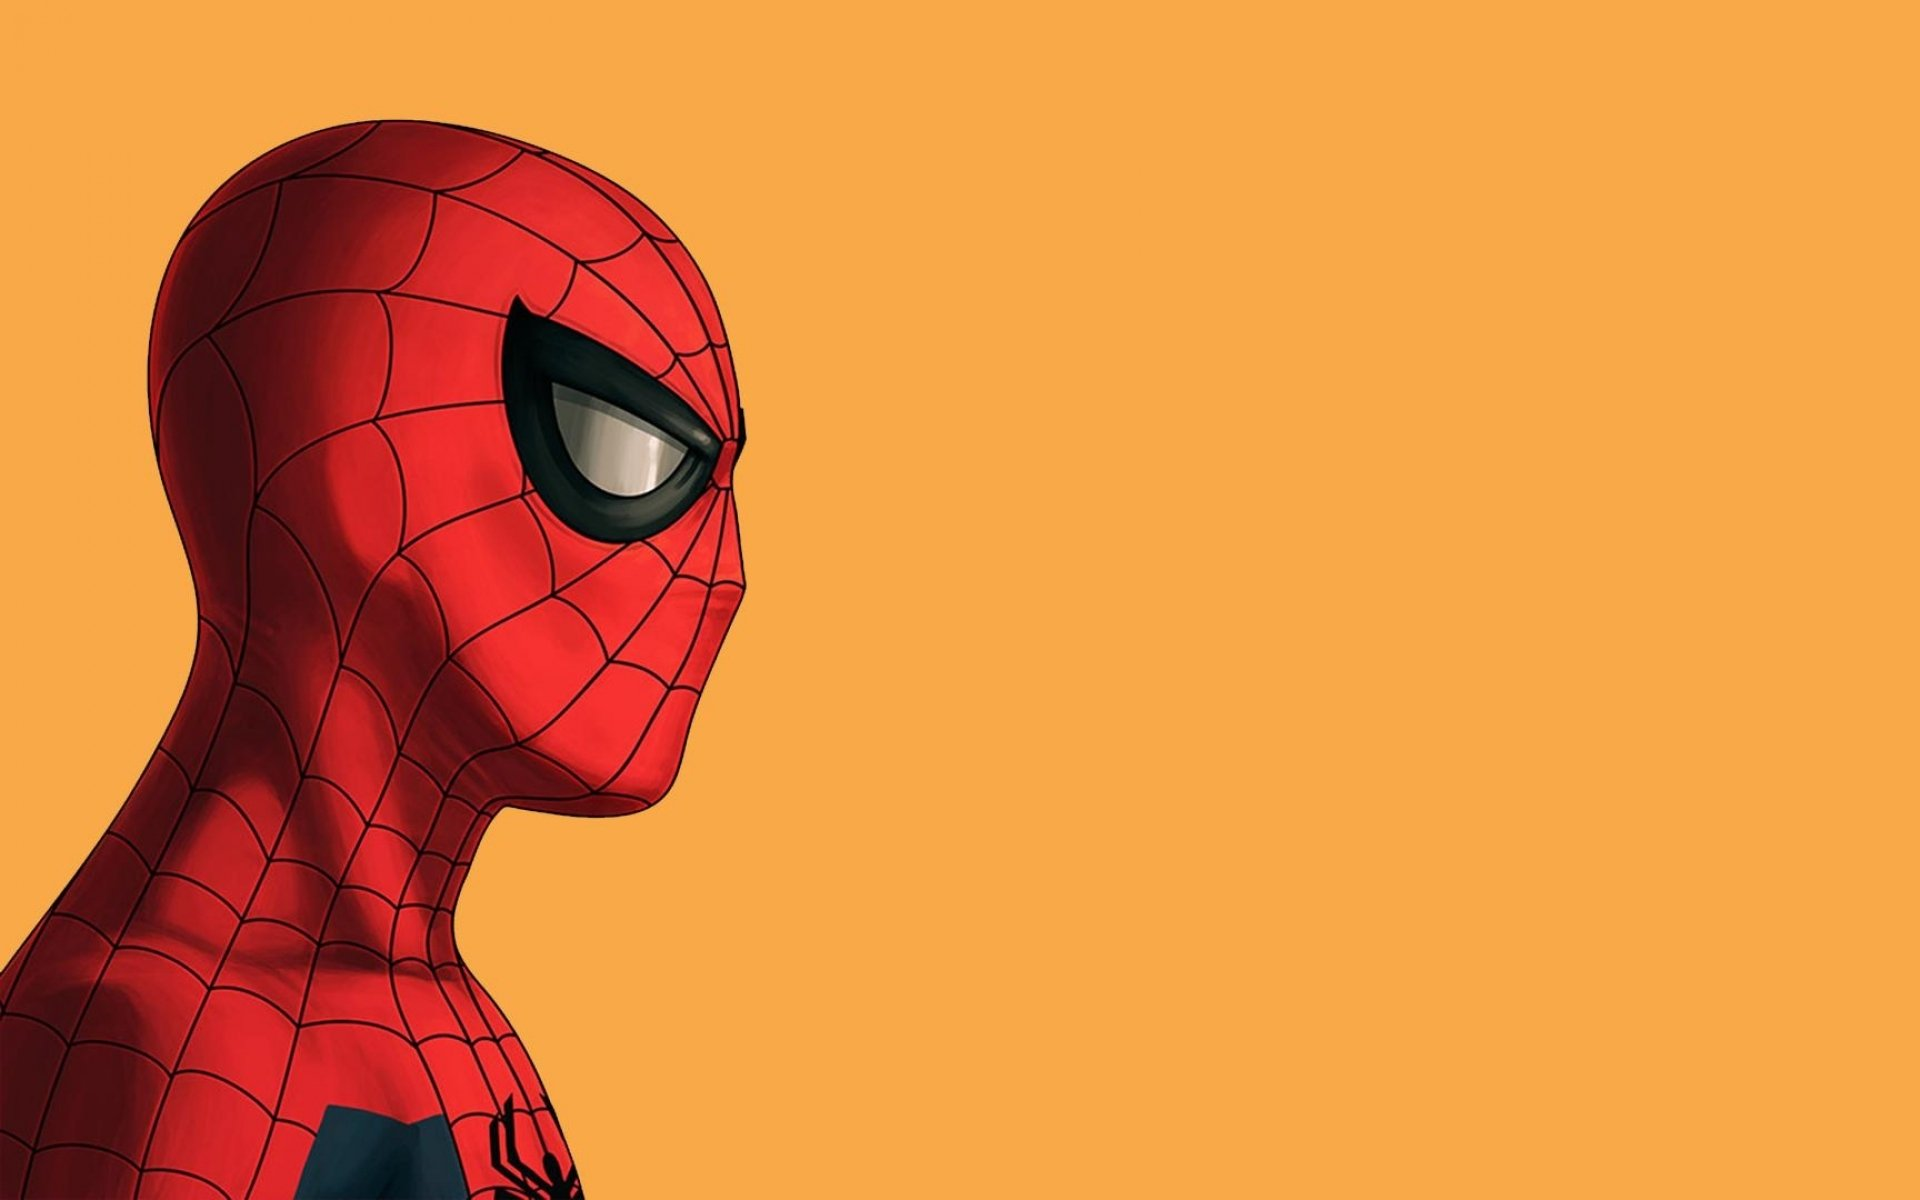 Spiderman Wallpaper Hero Movie 45 #1813 Wallpaper | Forrestkyle